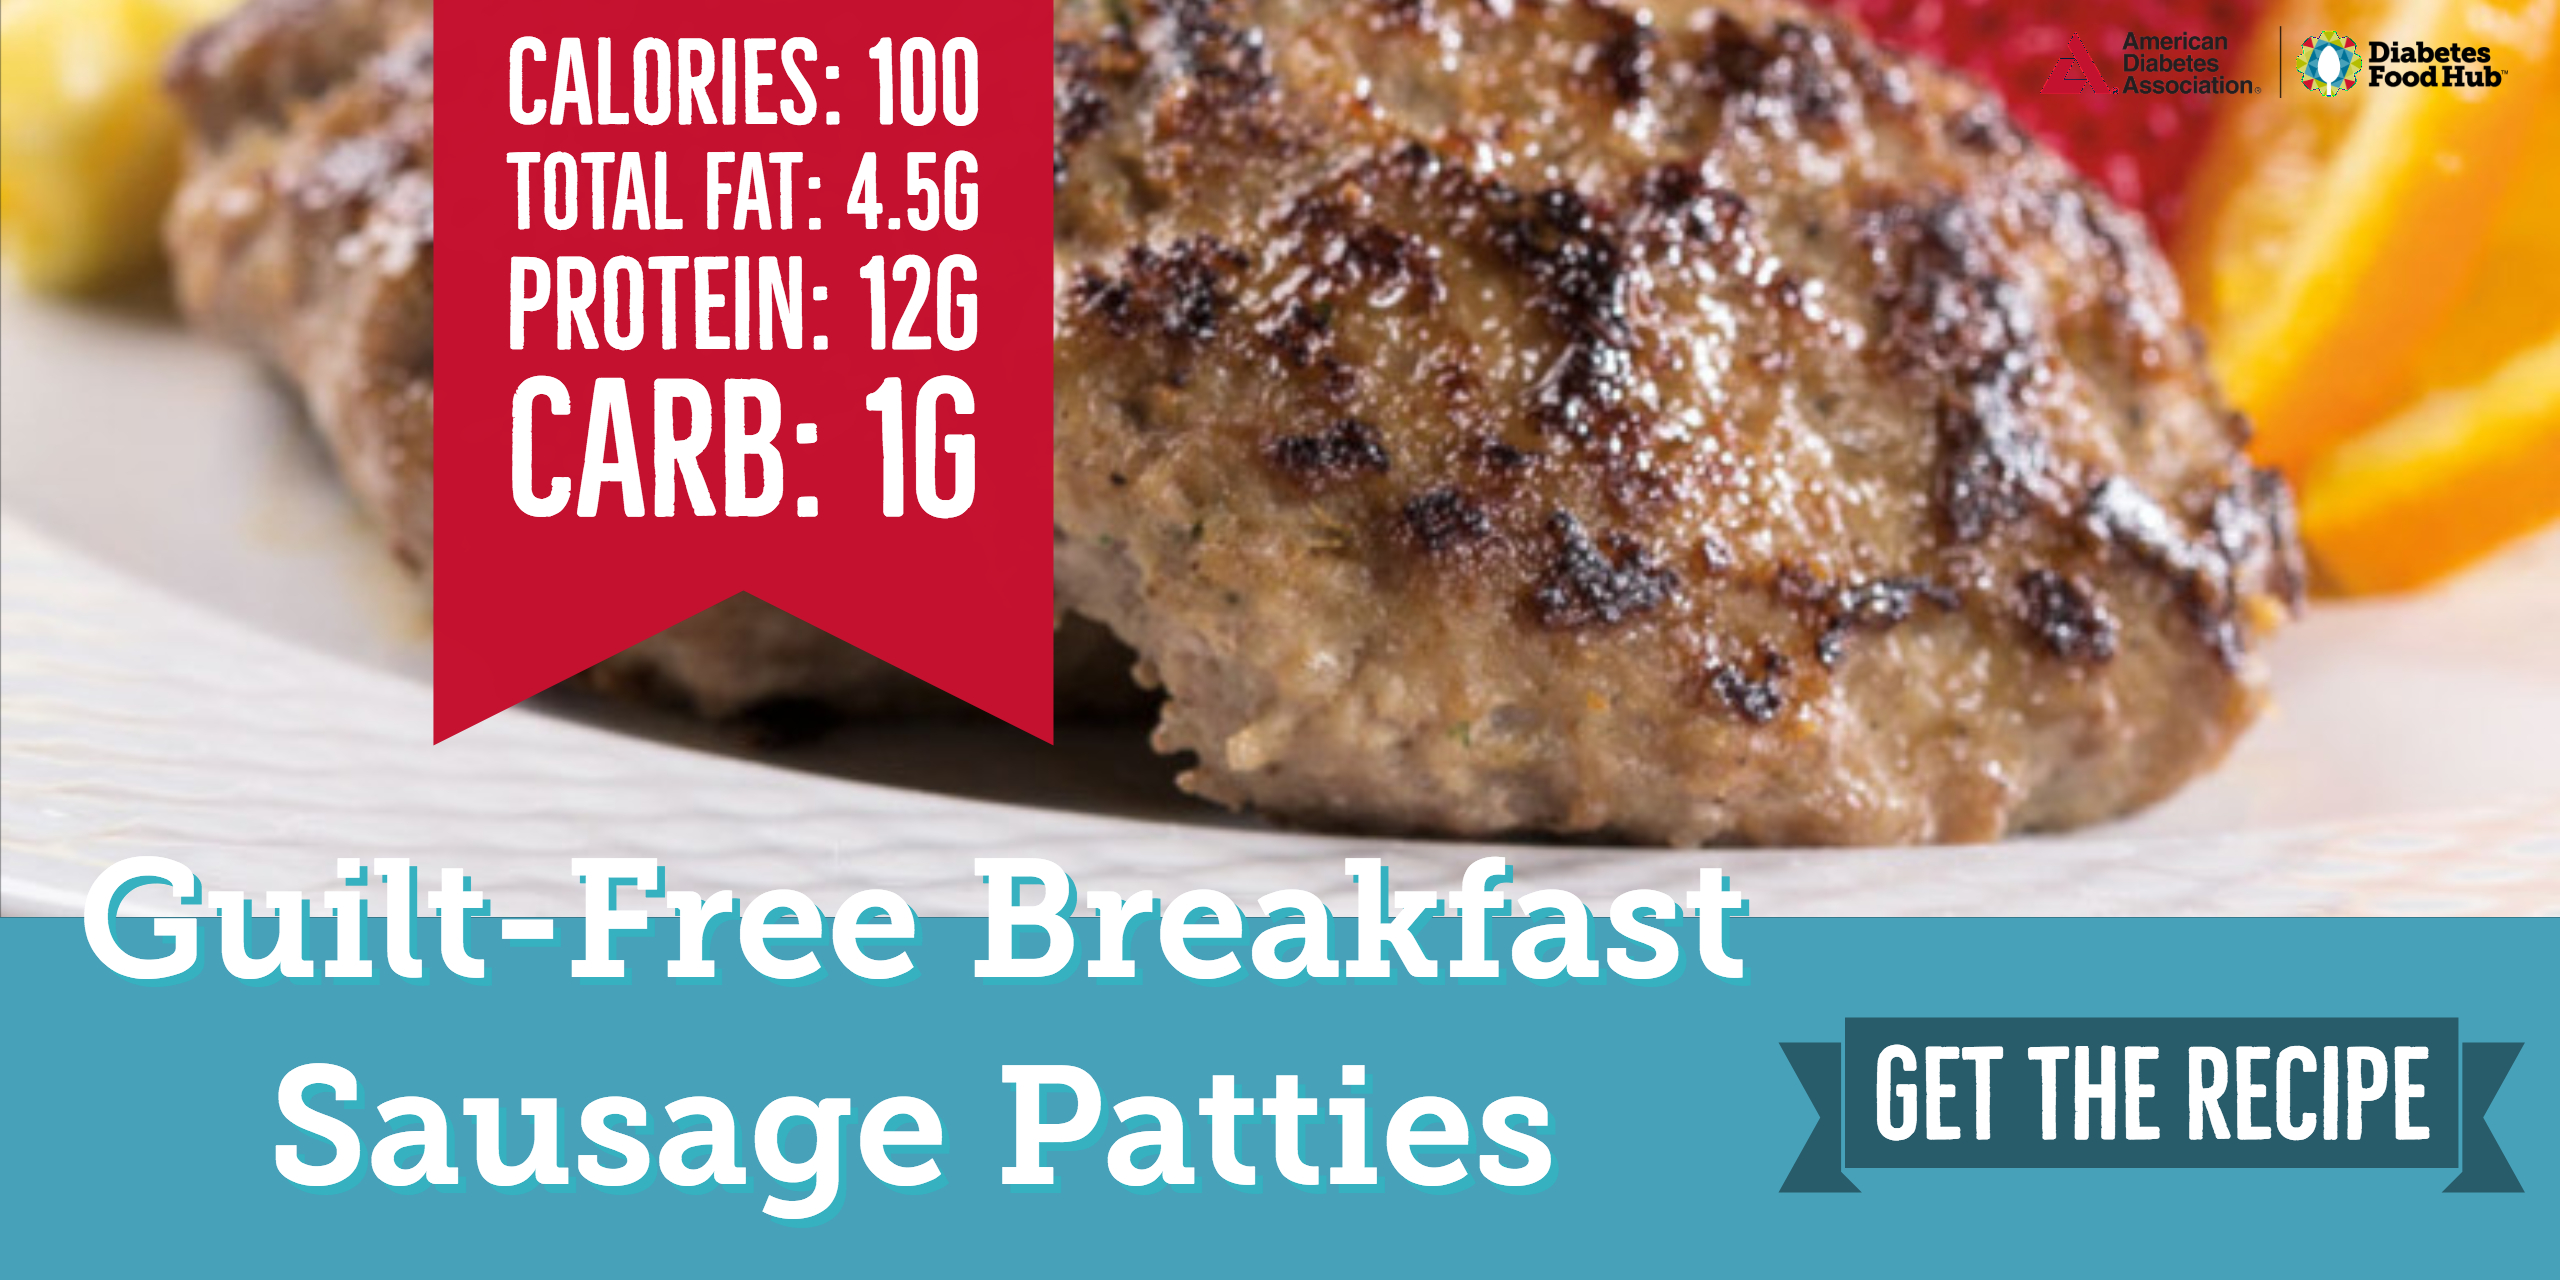 low carb diabetes suasage patties